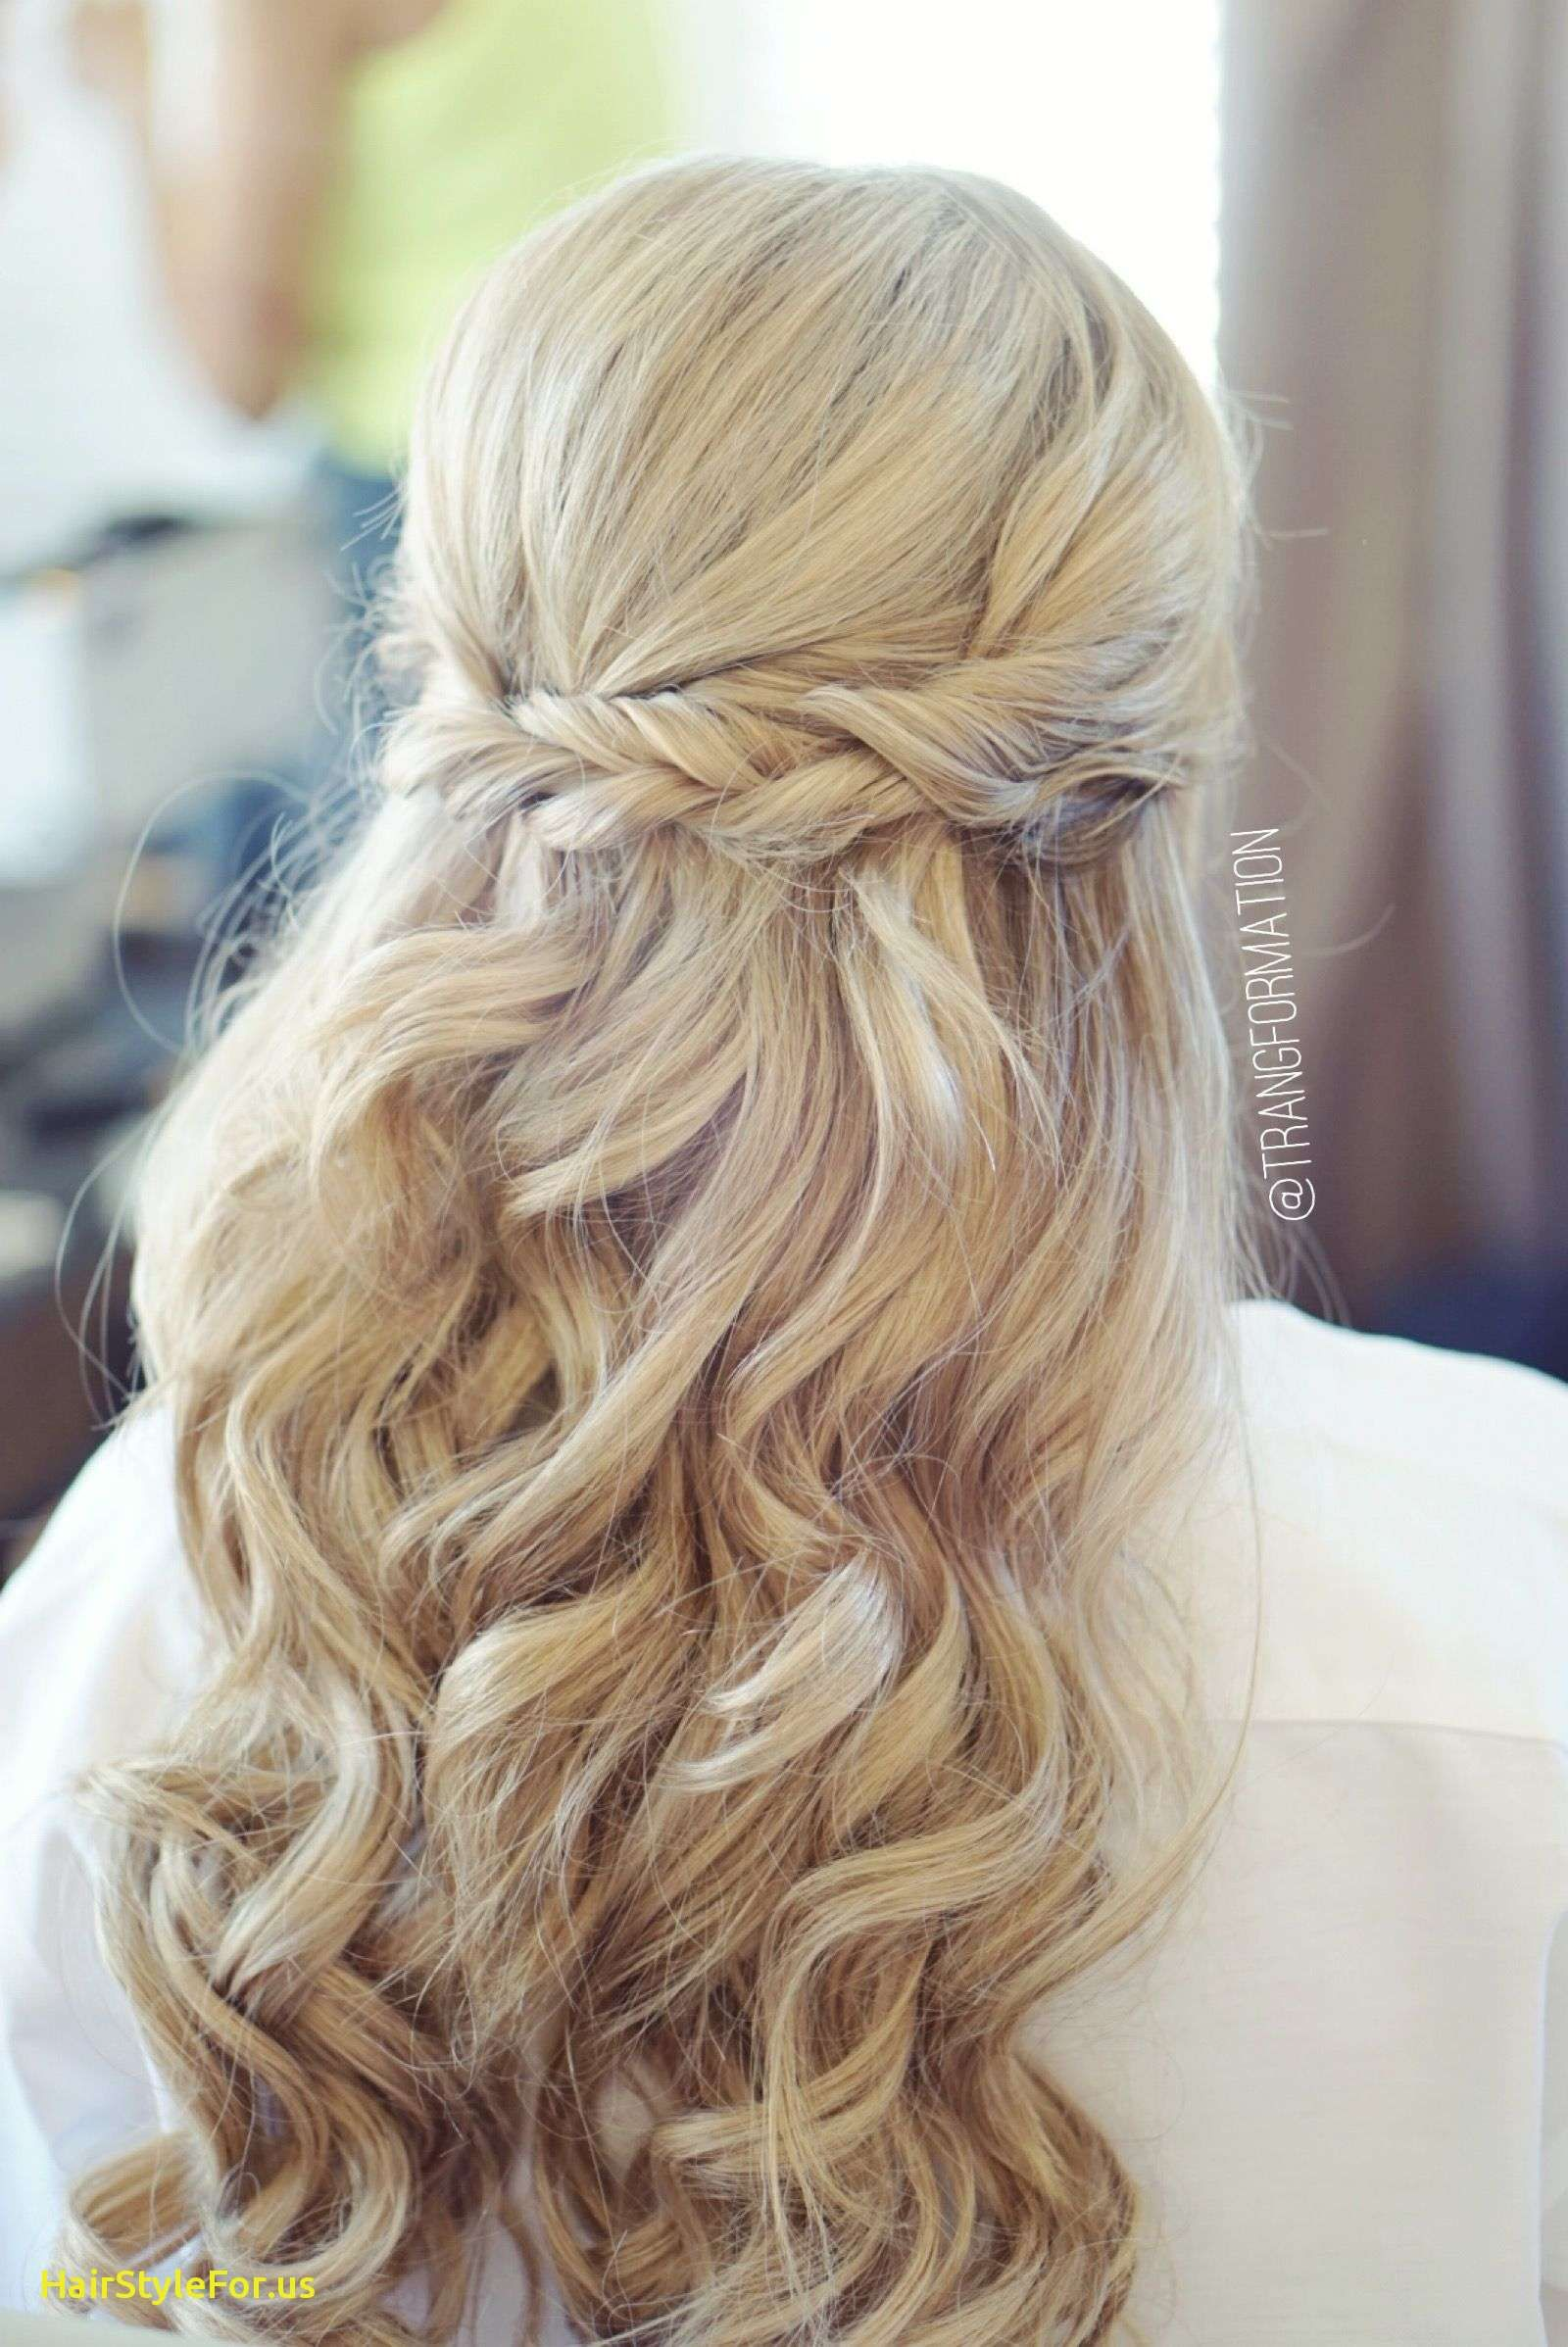 inspirational country wedding hairstyles for long hair